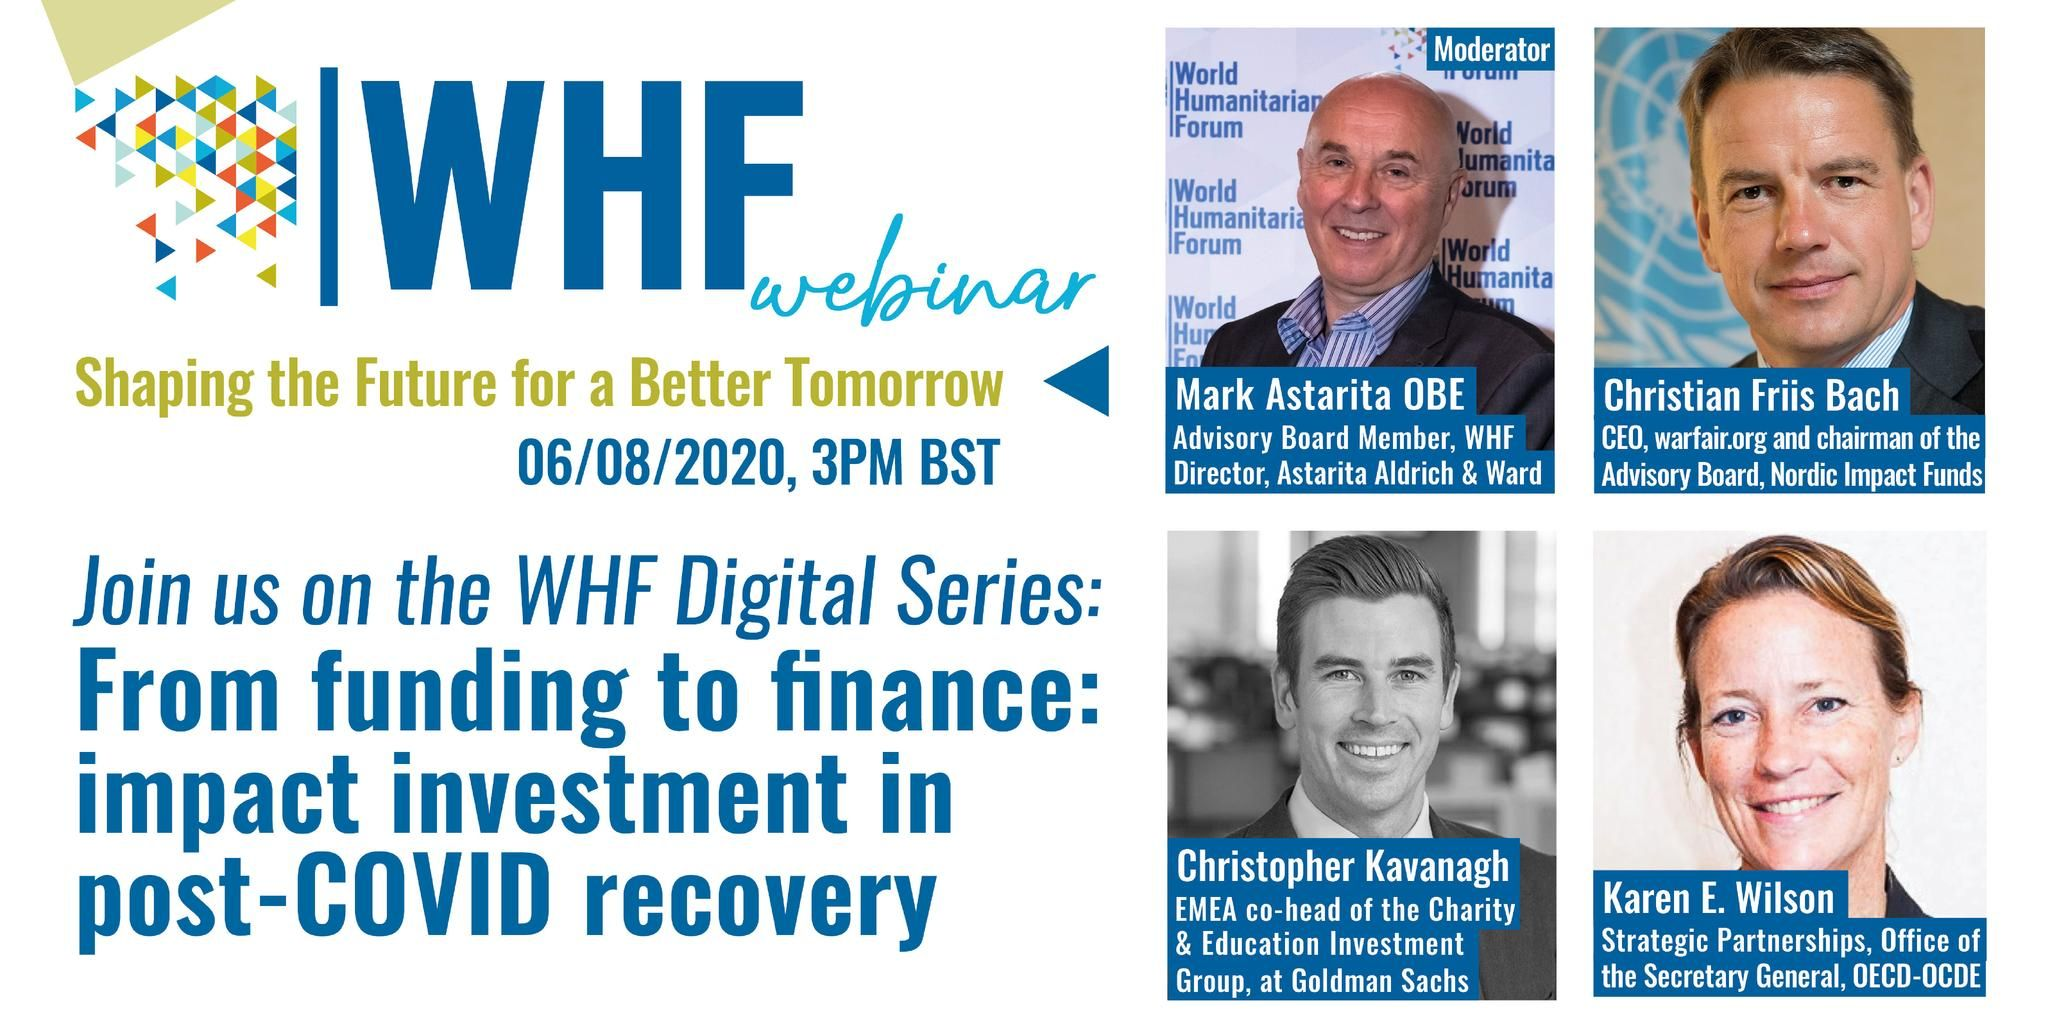 From funding to finance: impact investment in post-COVID recovery